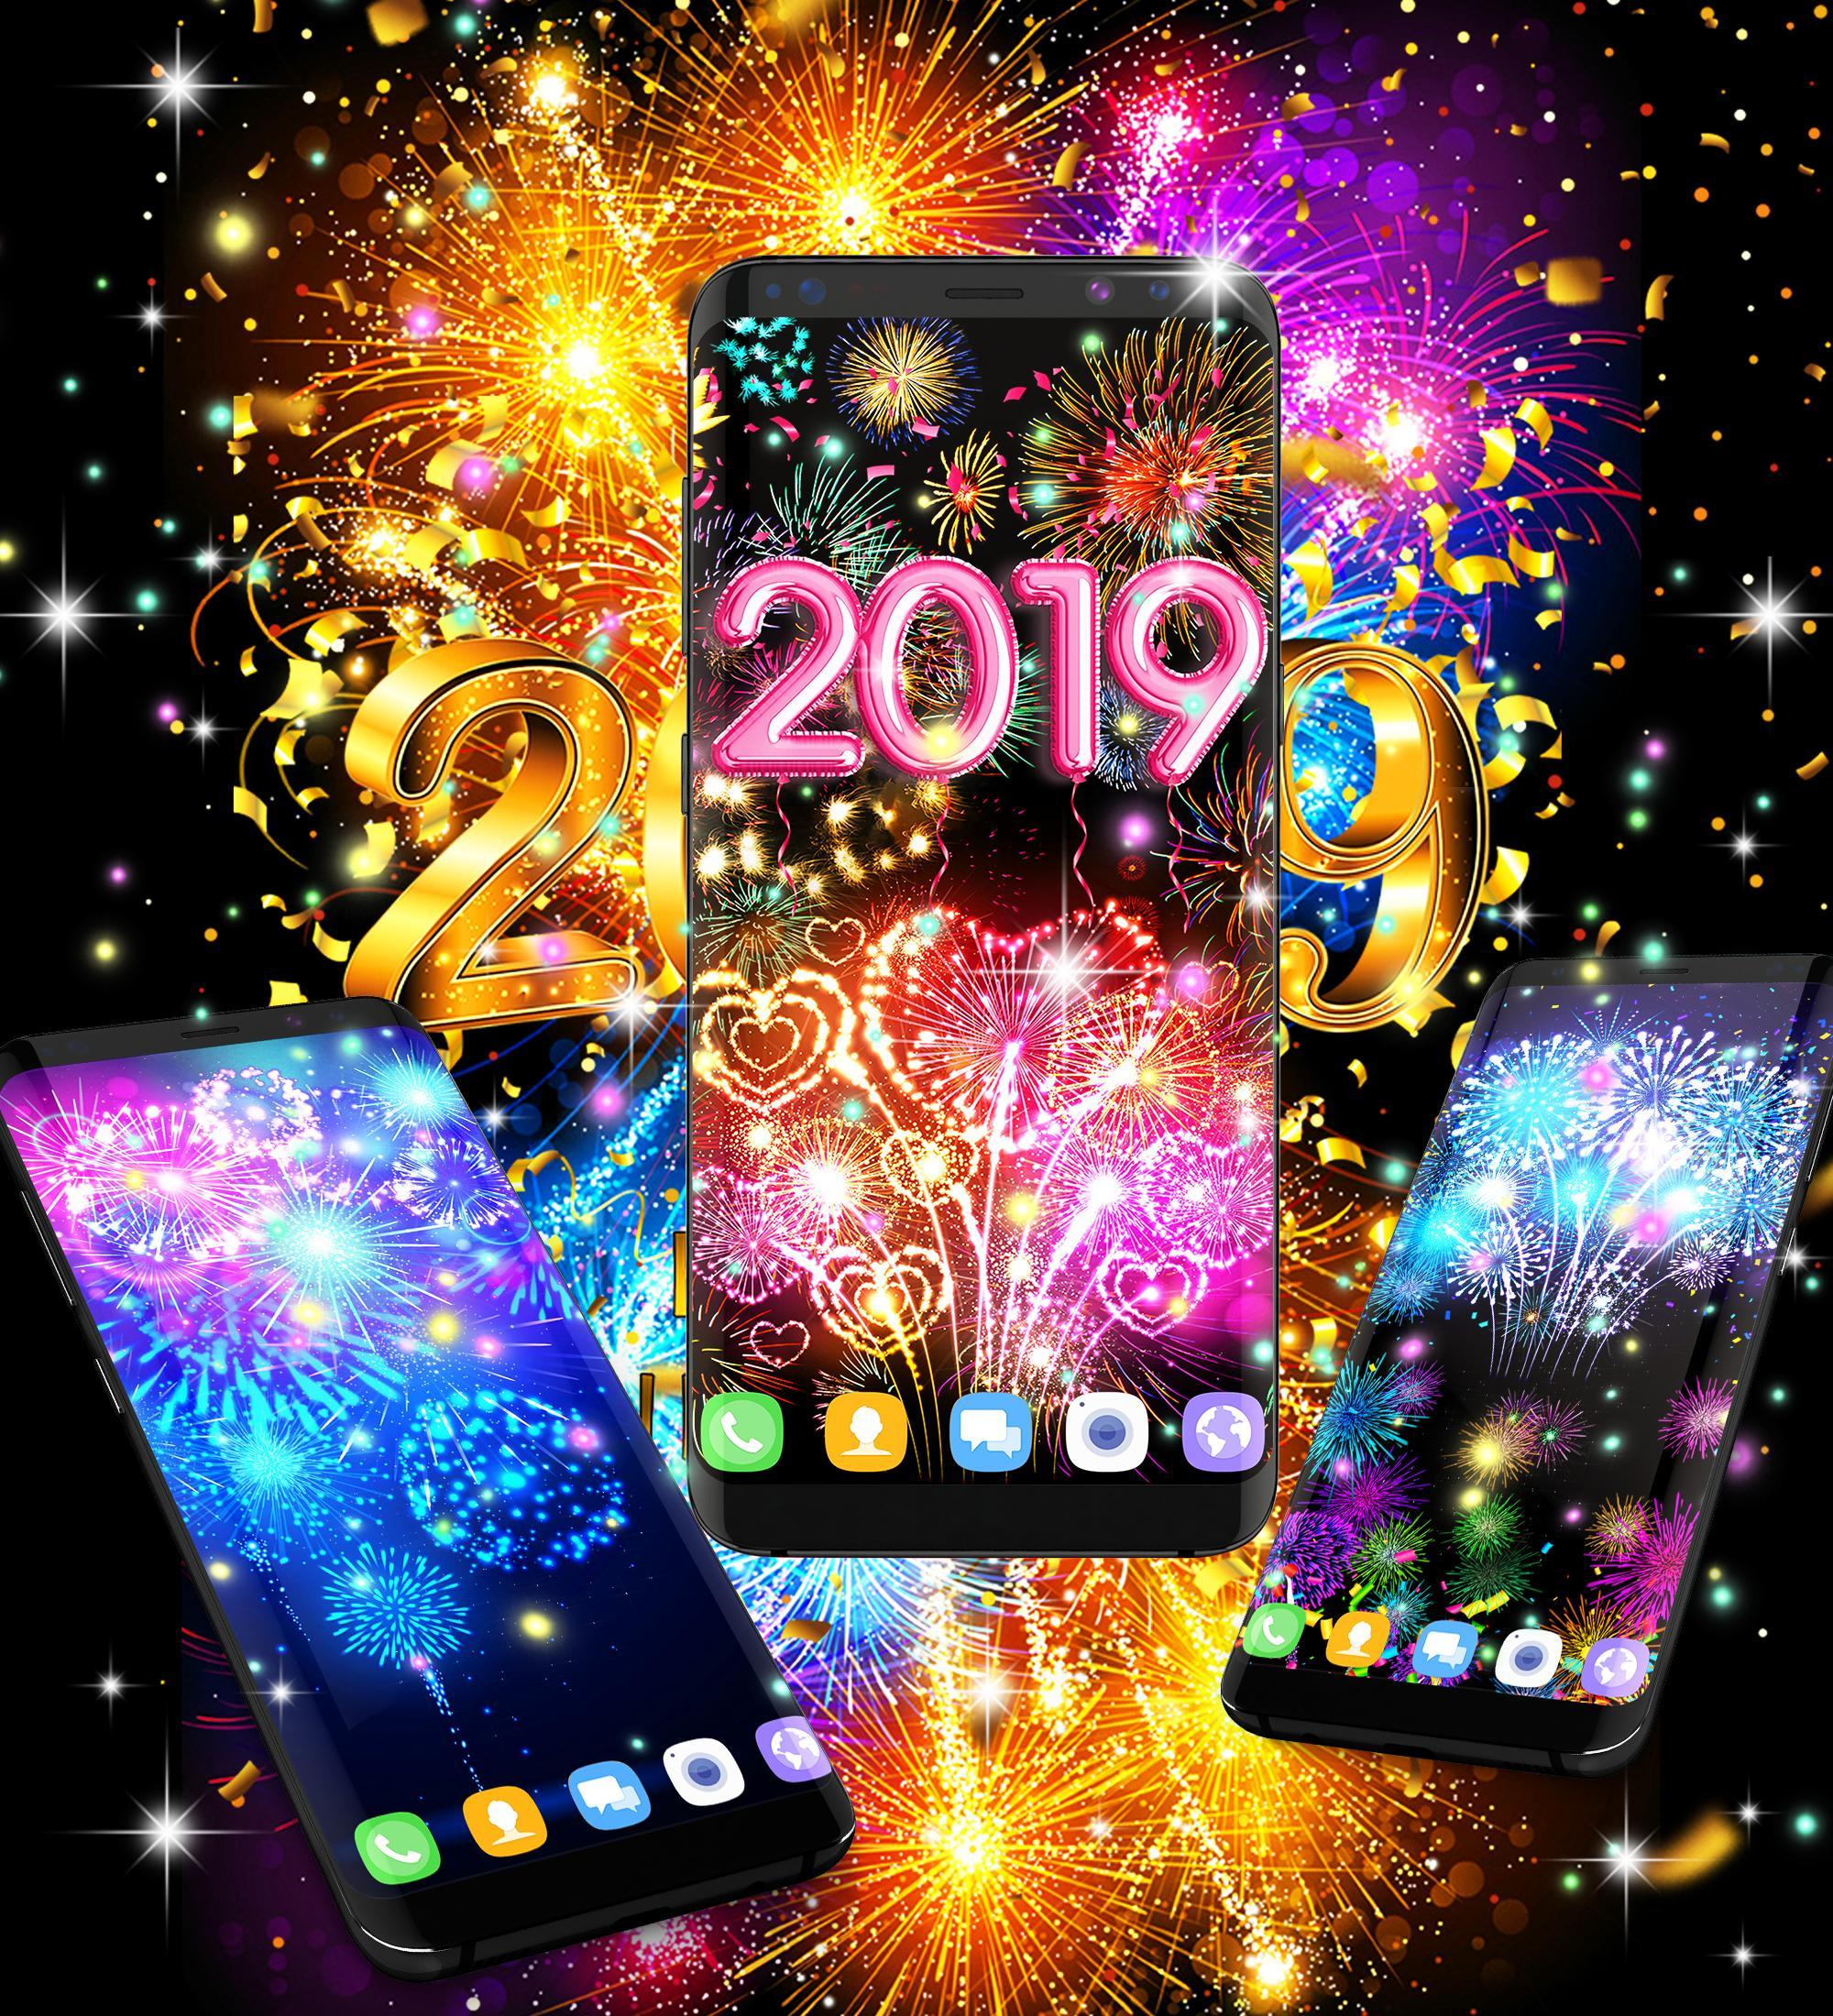 Happy New Year 2020 Live Wallpaper For Android Apk Download